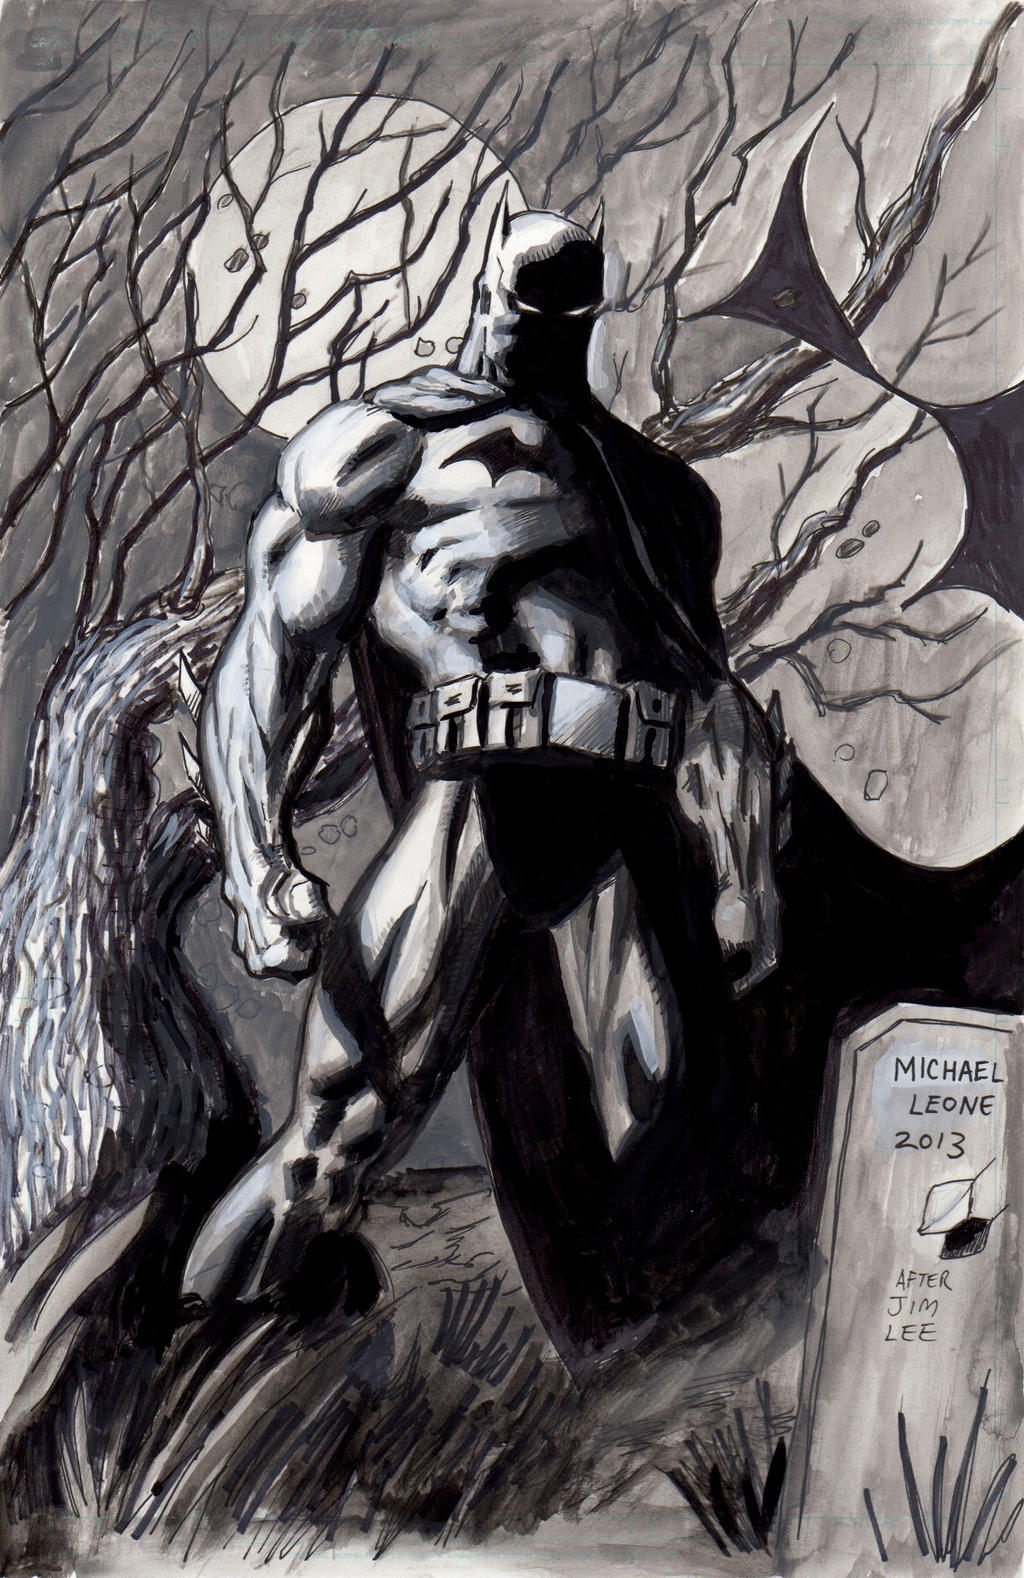 Batman Hush 7-15-2013 by myconius